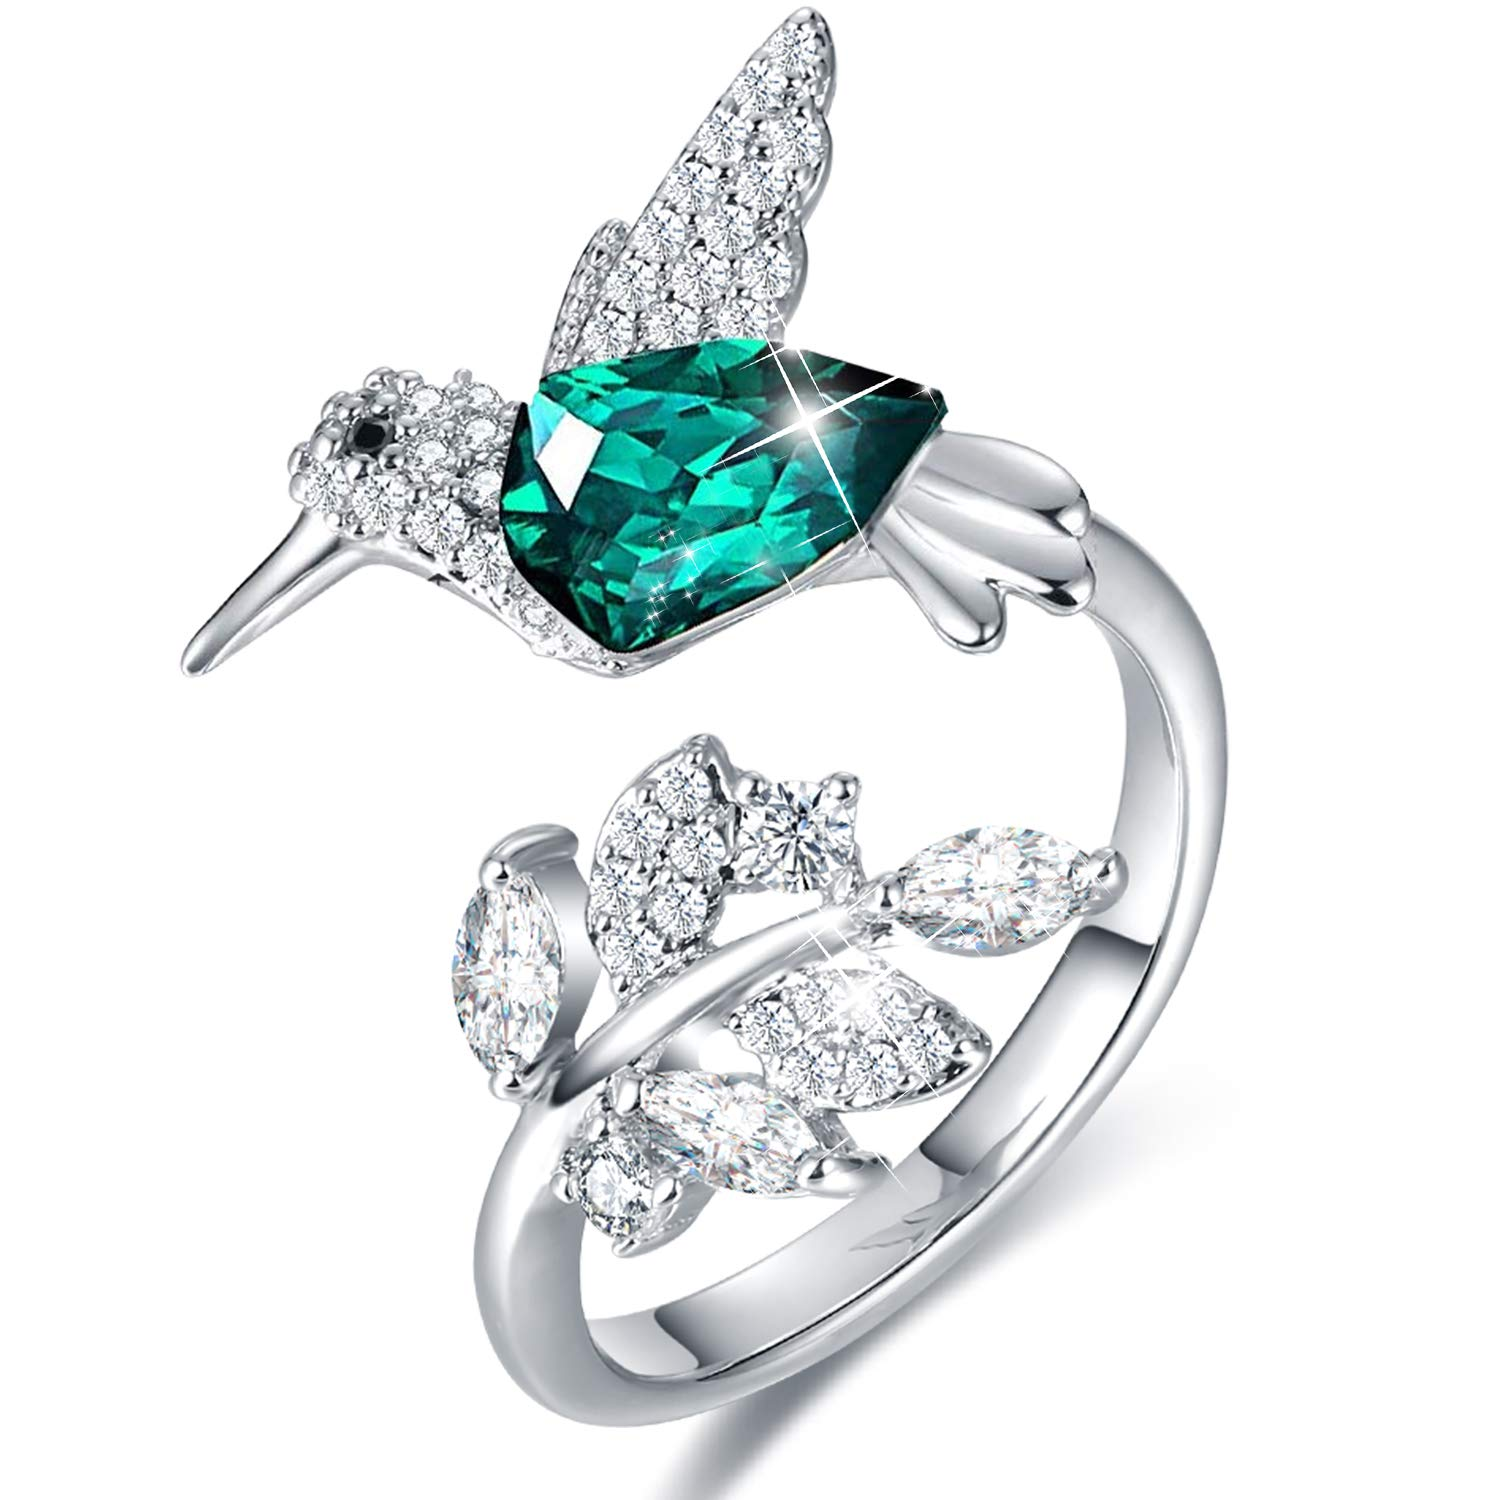 CDE Hummingbird Ring S925 Sterling Silver Rings for Women Embellished with Crystals from Swarovski Adjustable Rings for Women and Girls by CDE